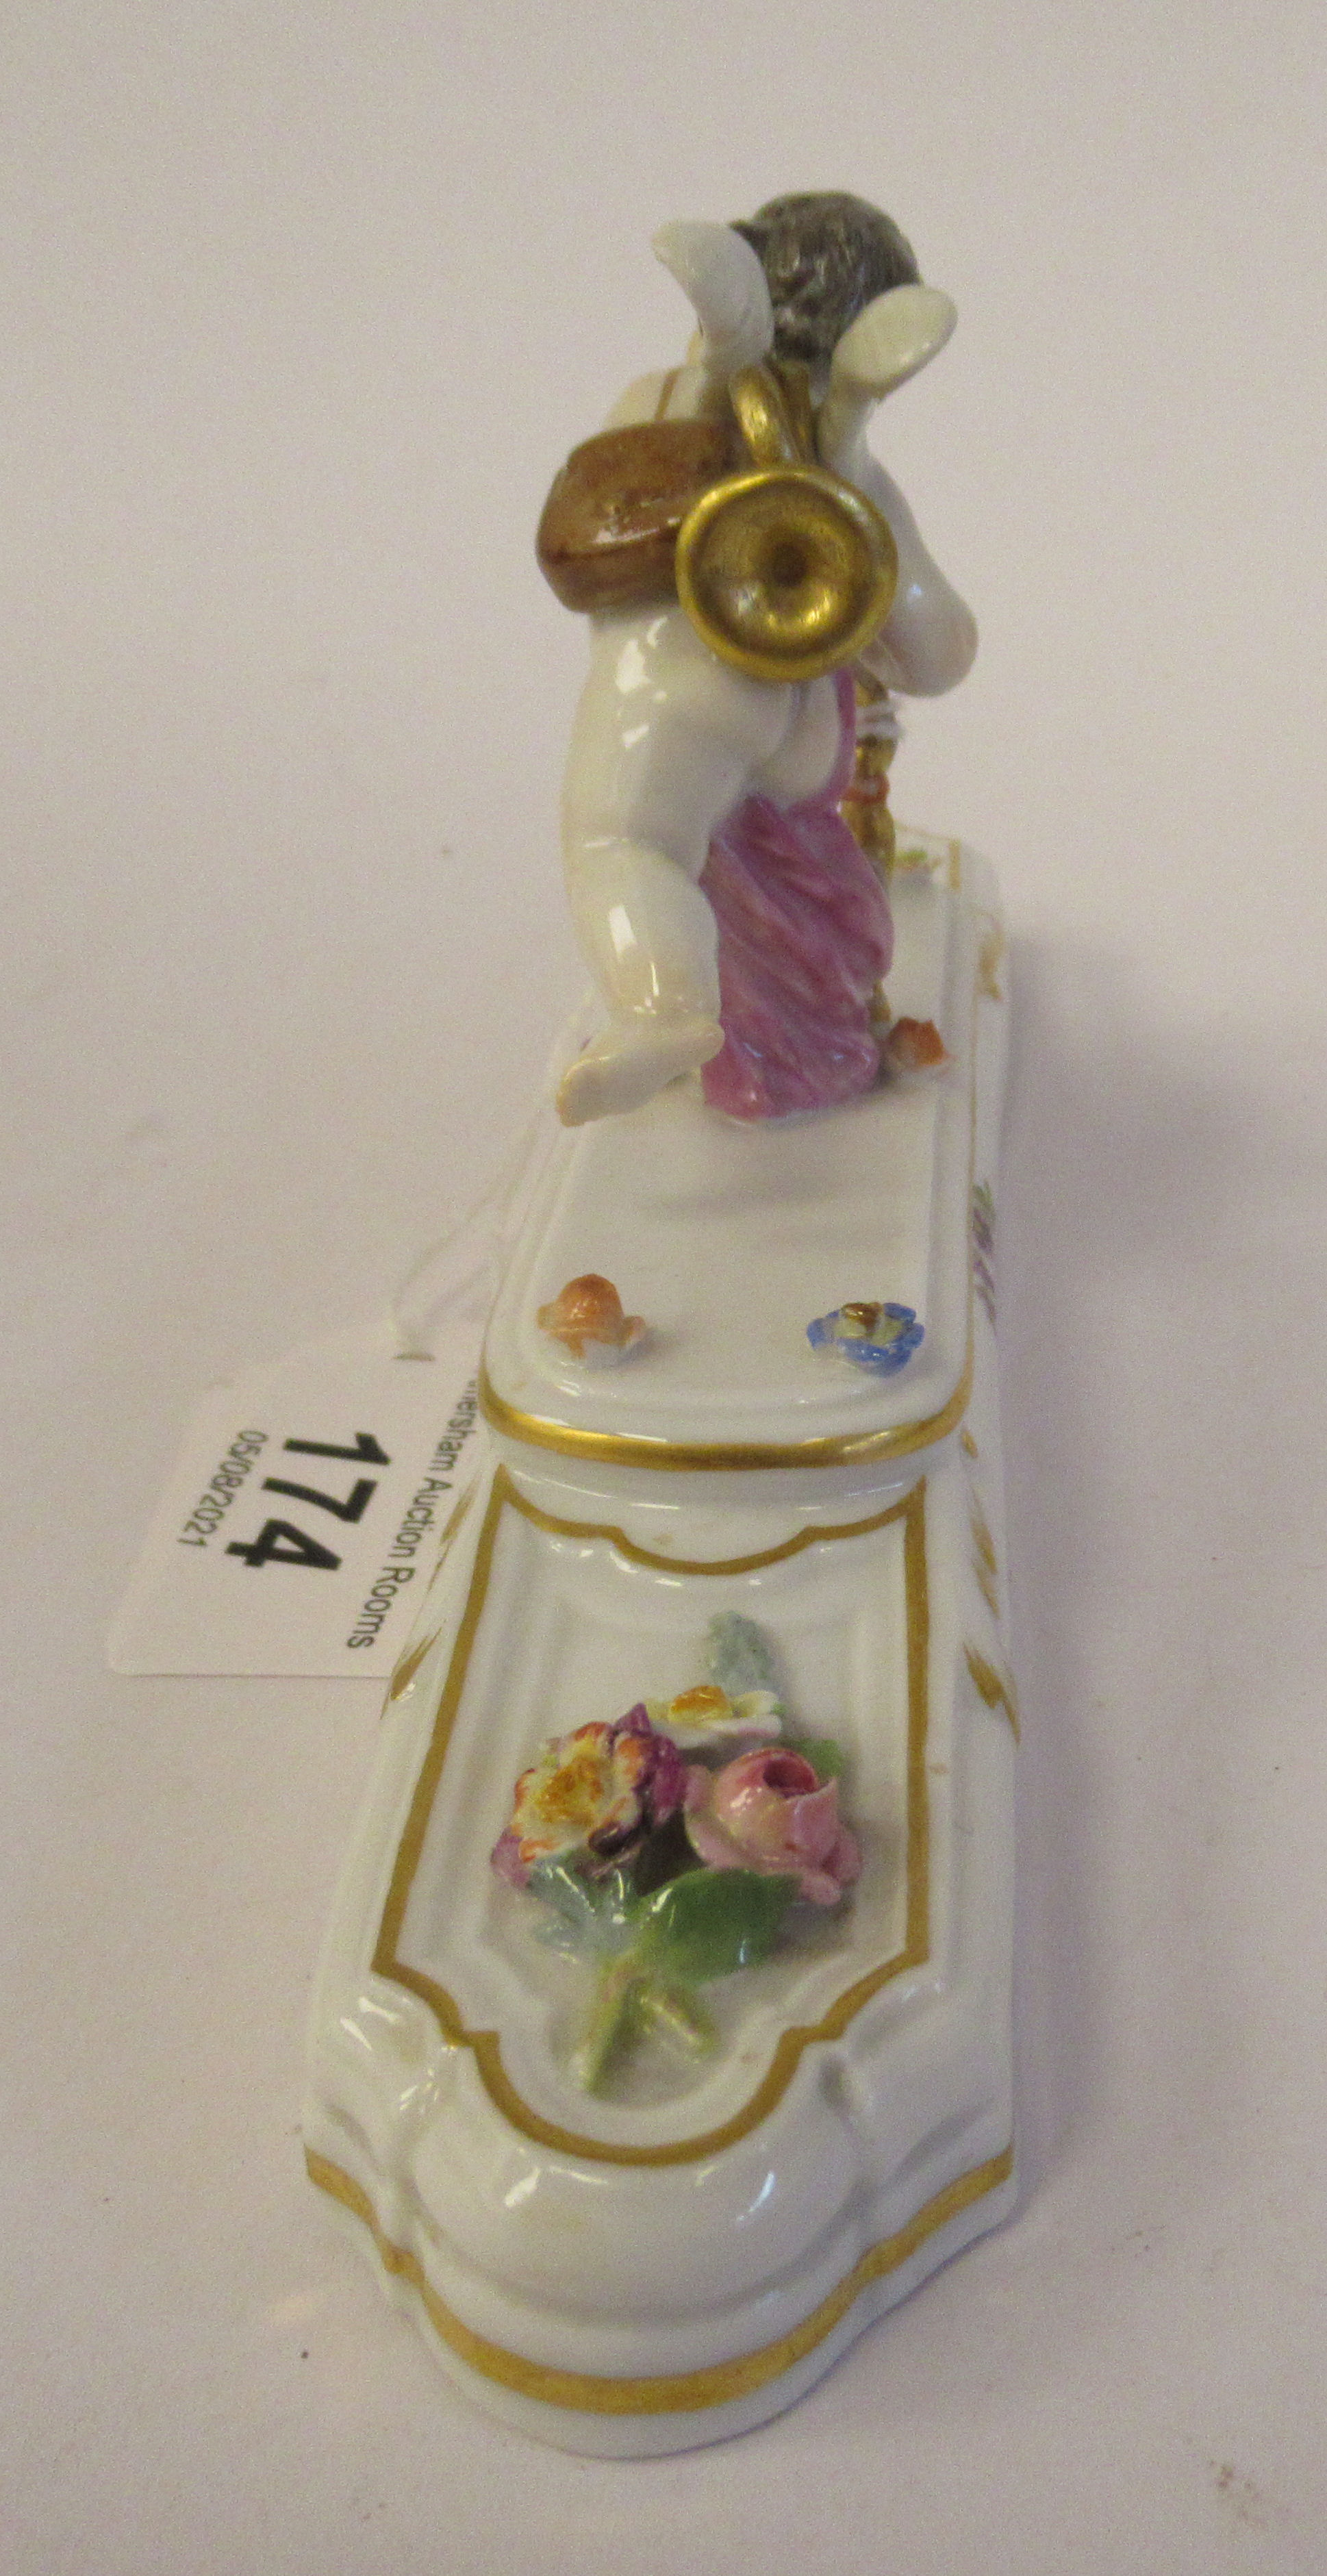 A 20thC Meissen gilded porcelain paperweight, featuring a standing cherubic figure with a staff, - Image 2 of 5